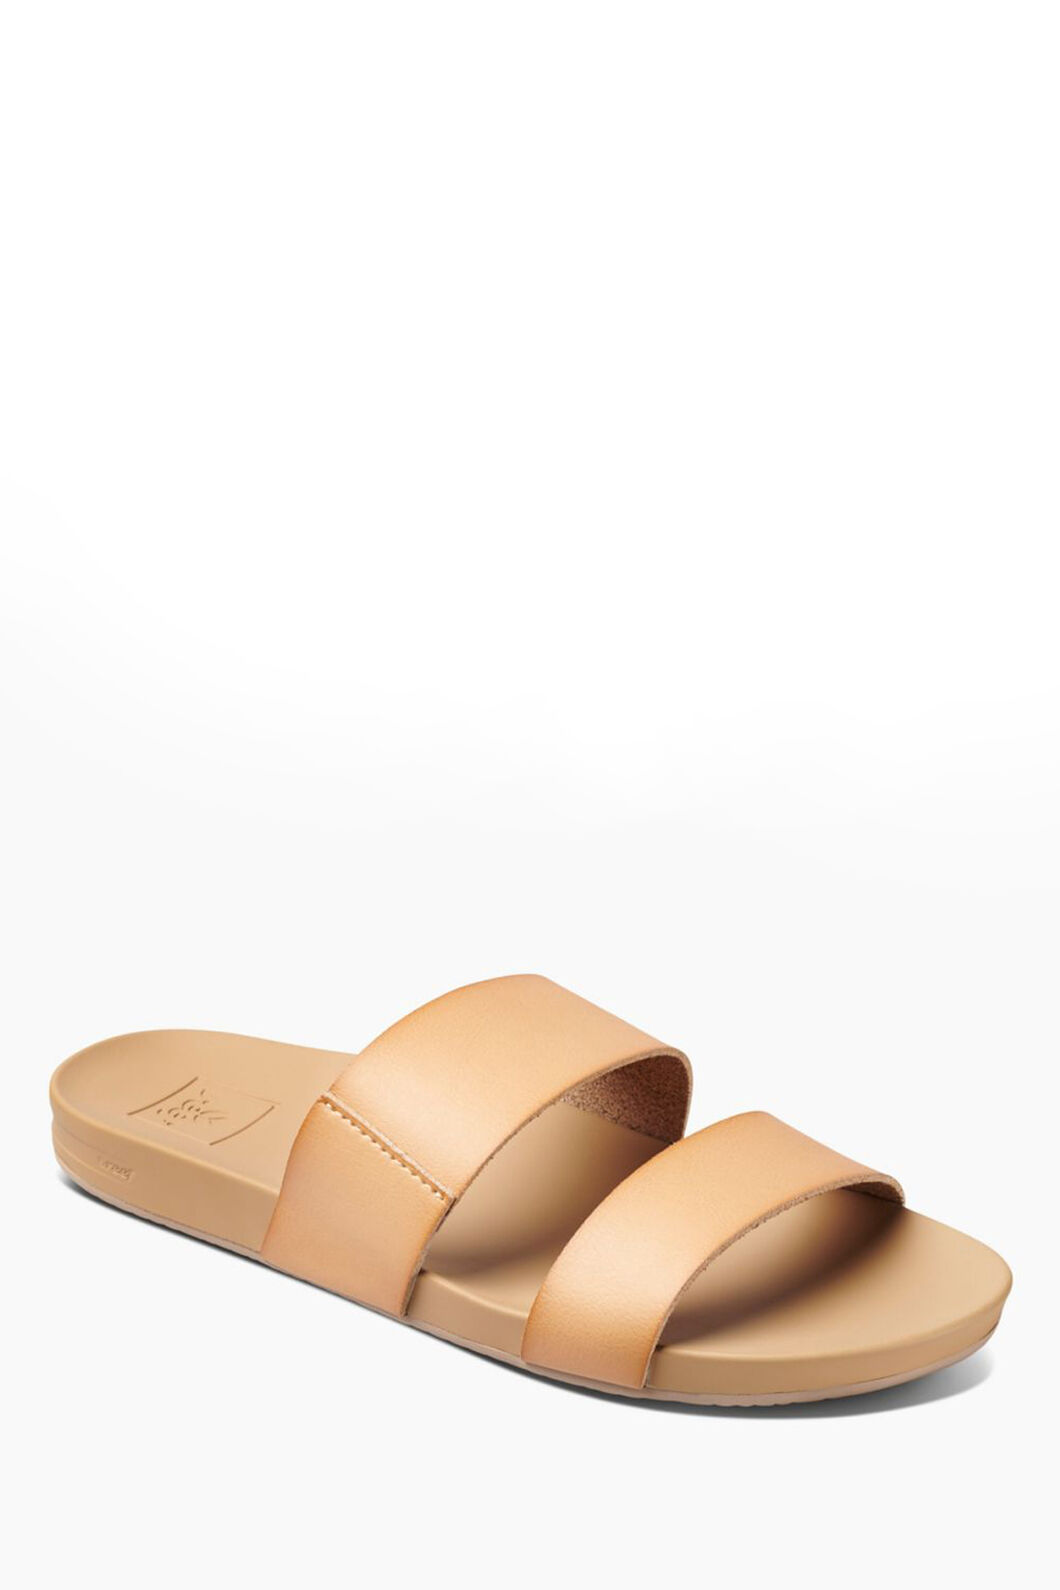 Reef Cushion Vista Slide Sandals — Women's, Natural, hi-res